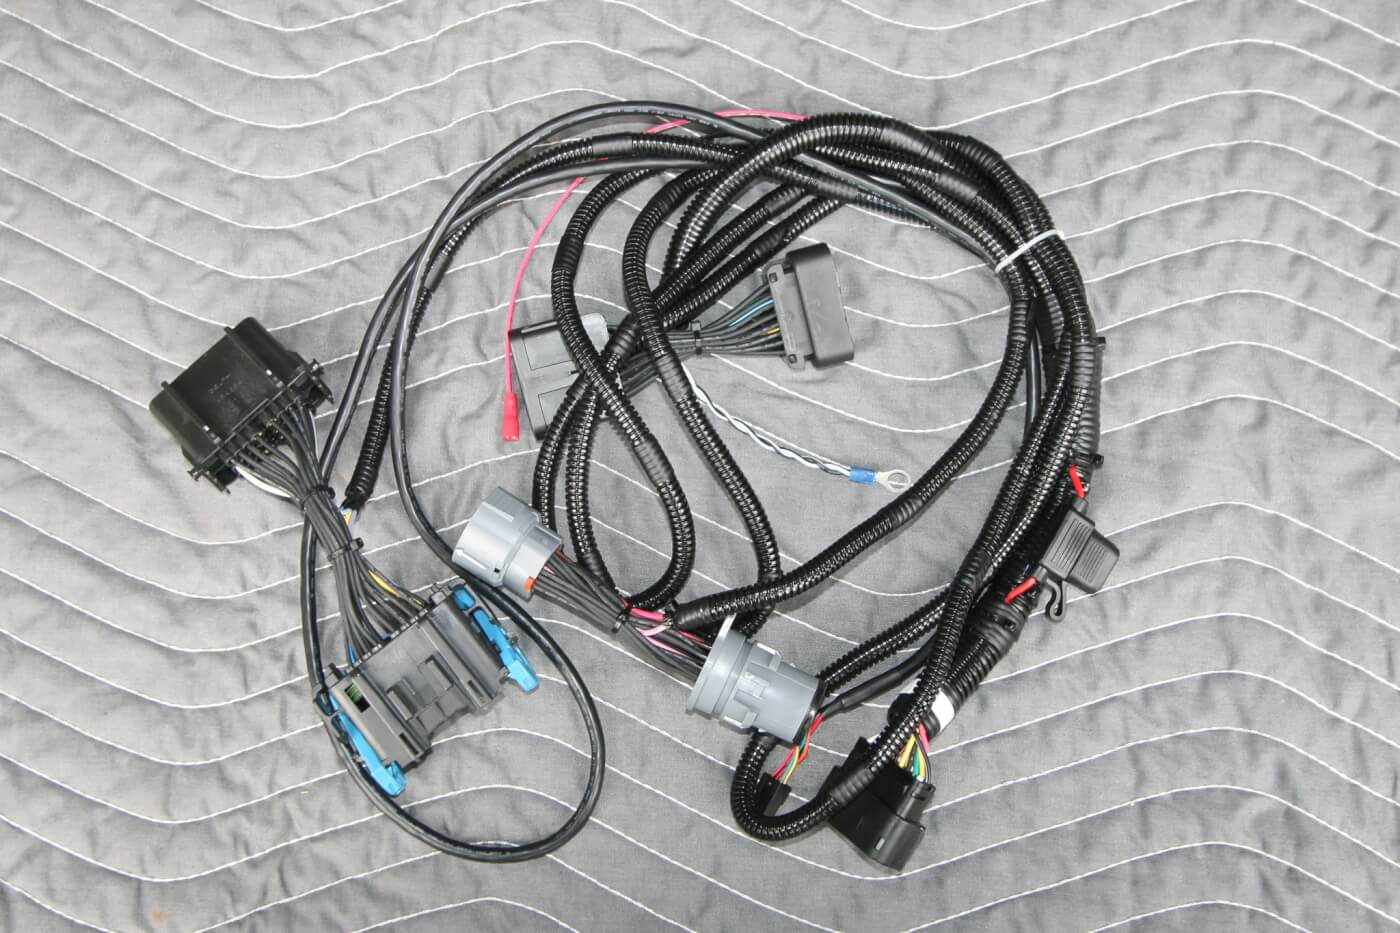 3. A quality unit is nothing without a proper infrastructure, so Banks goes to great lengths to create OEM-quality harnesses that can stand the abuse and are cut to exact dimensions.